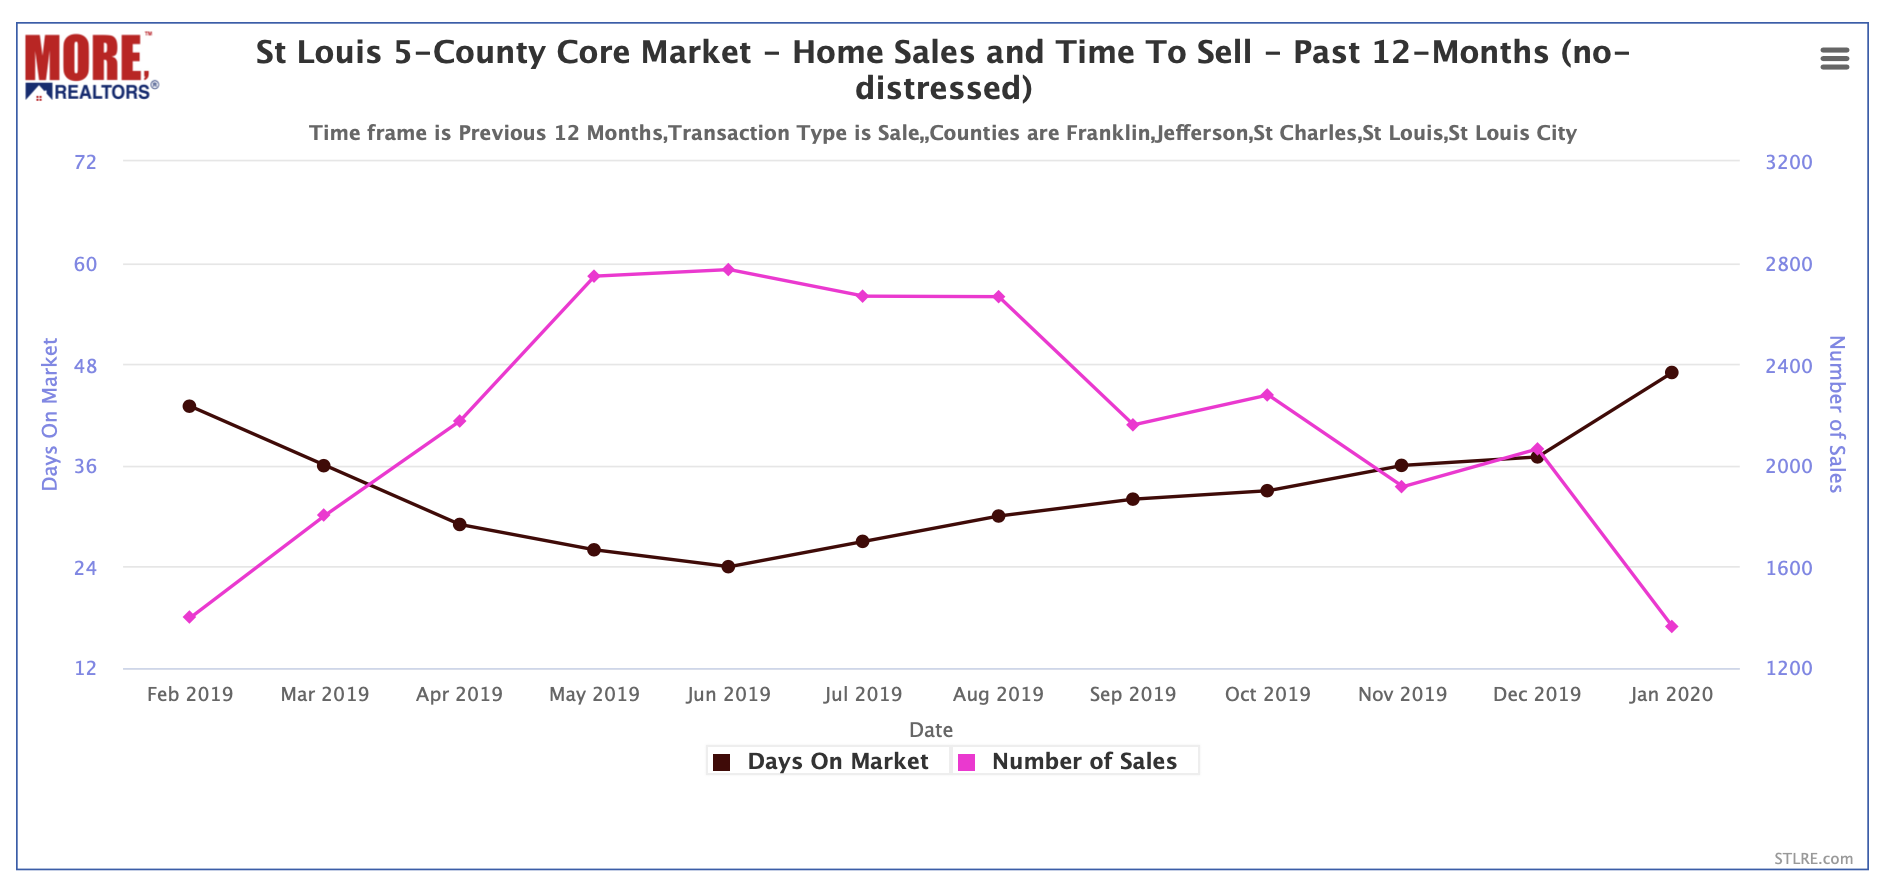 St Louis 5-County Core Market - Home Sales and Time To Sell - Past 12-Months (no-distressed)